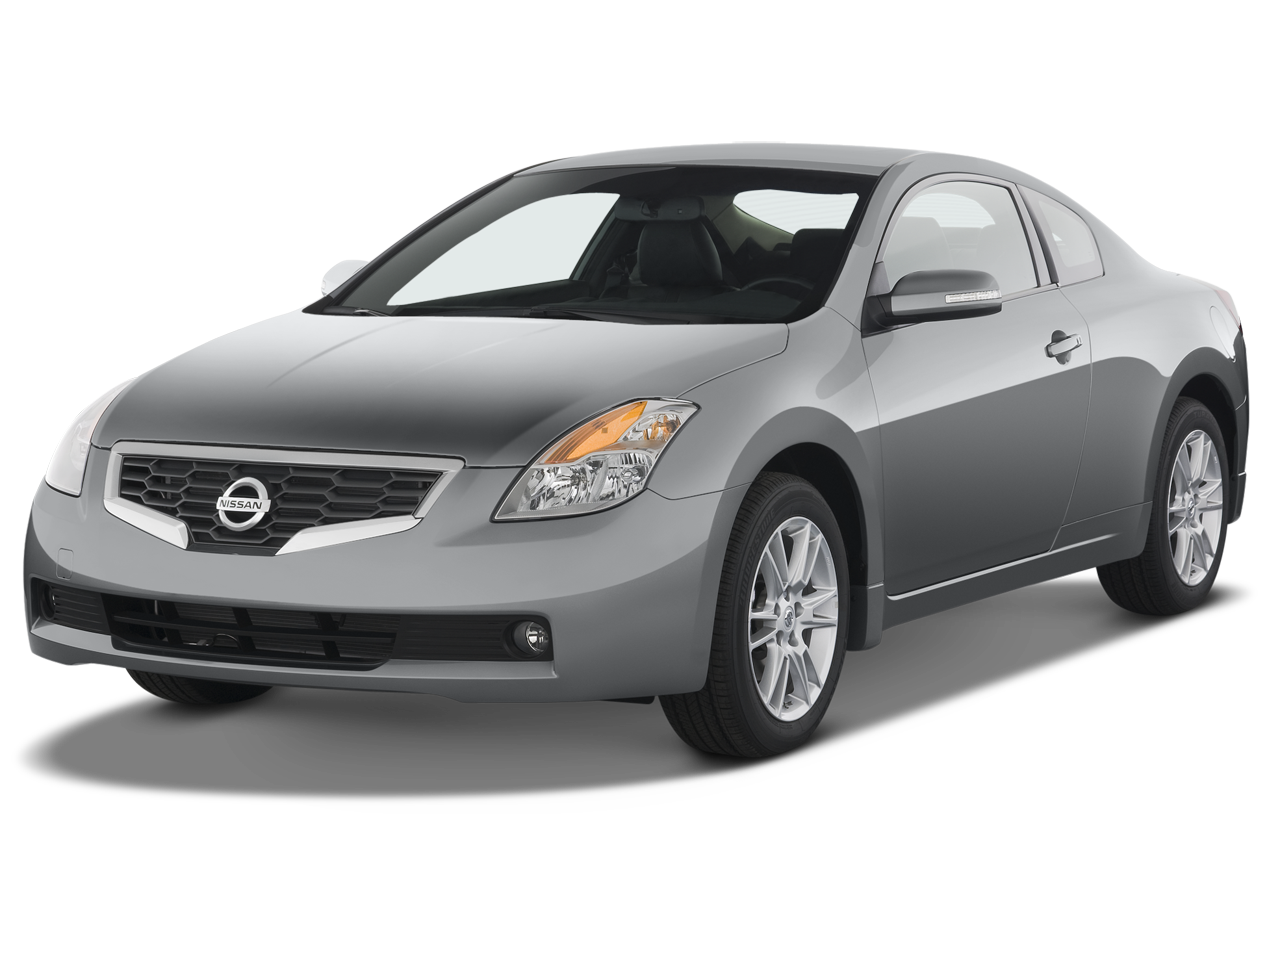 27 The Nissan Altima Coupe 2008 Redesign